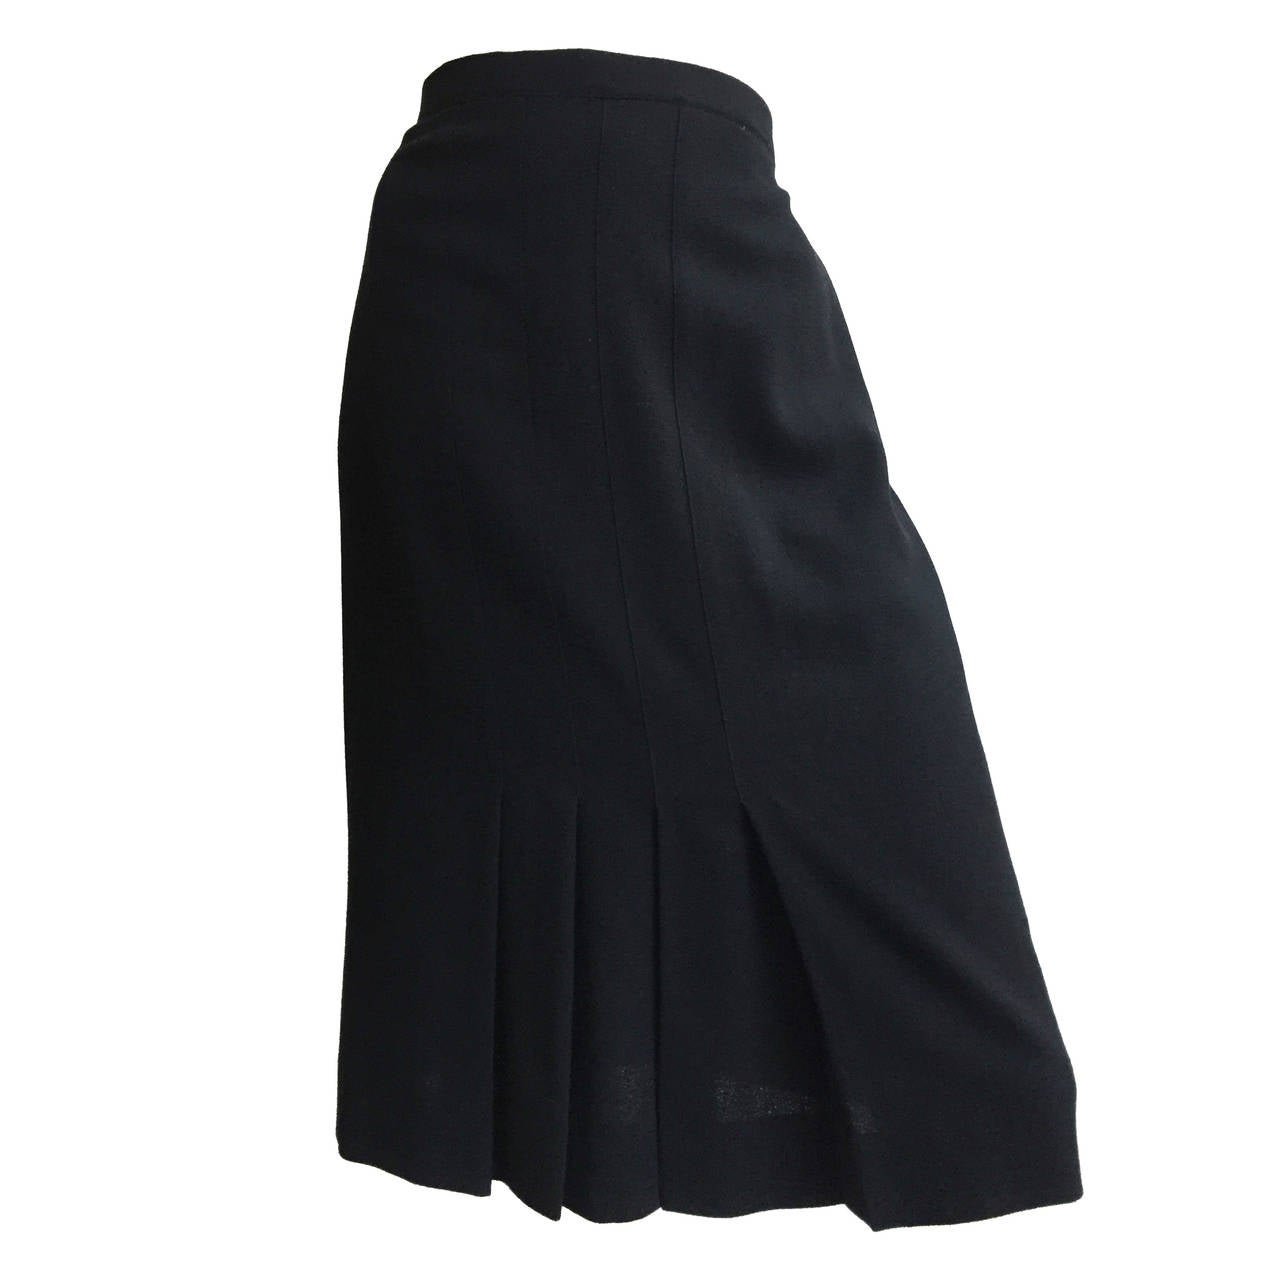 Chanel 80s Black Pleated Skirt Size 10. 1